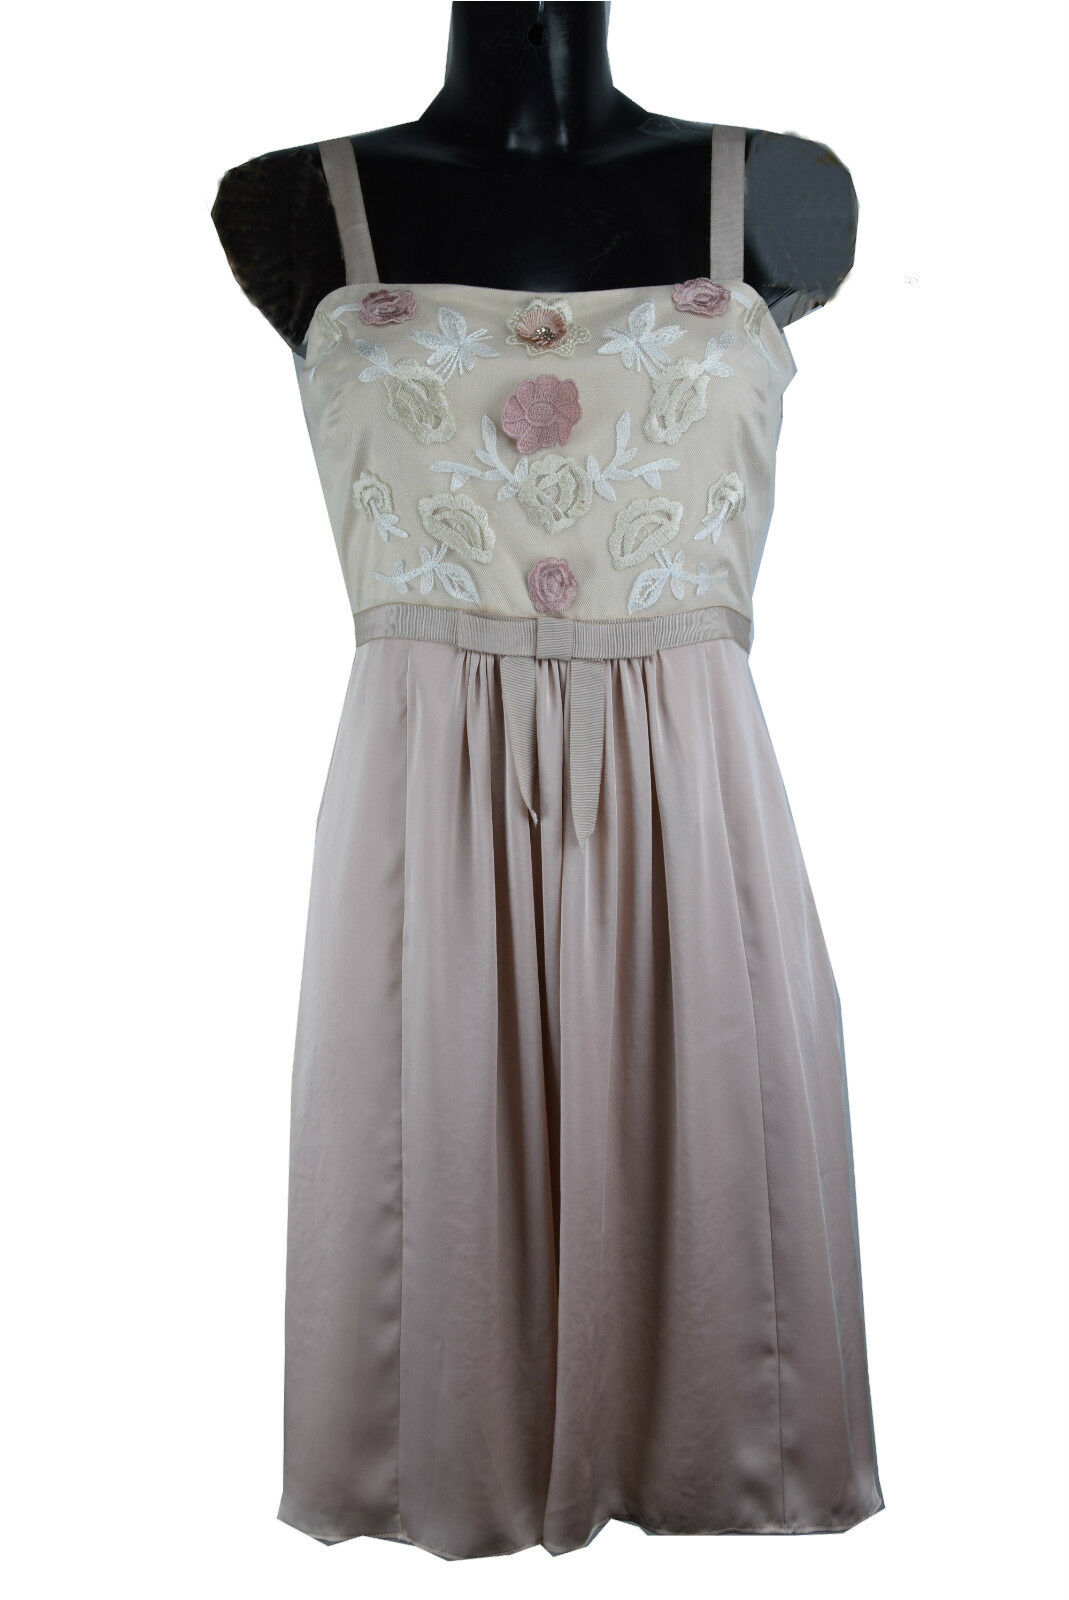 ALICE BY TEMPERLEY pink EMBROIDERY DRESS RRP  F1